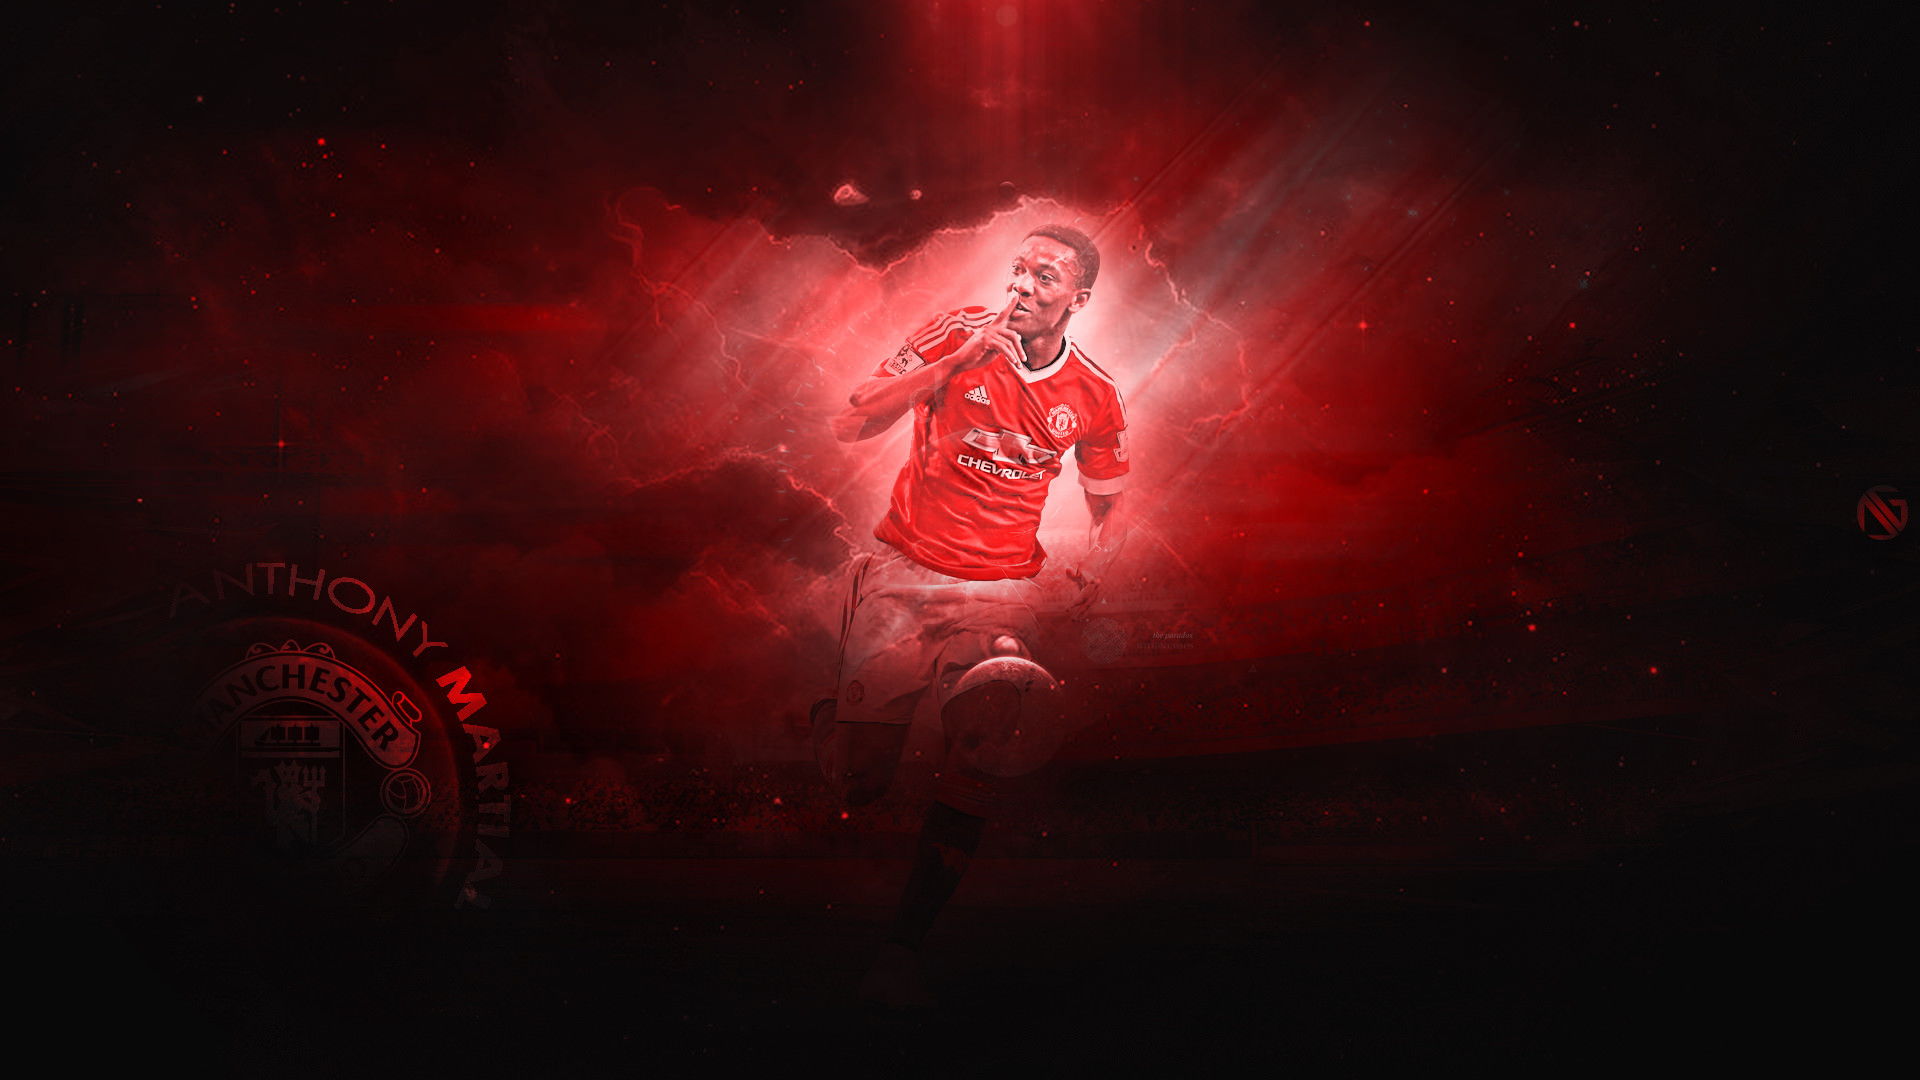 Manchester United Wallpaper HD (68+ Images